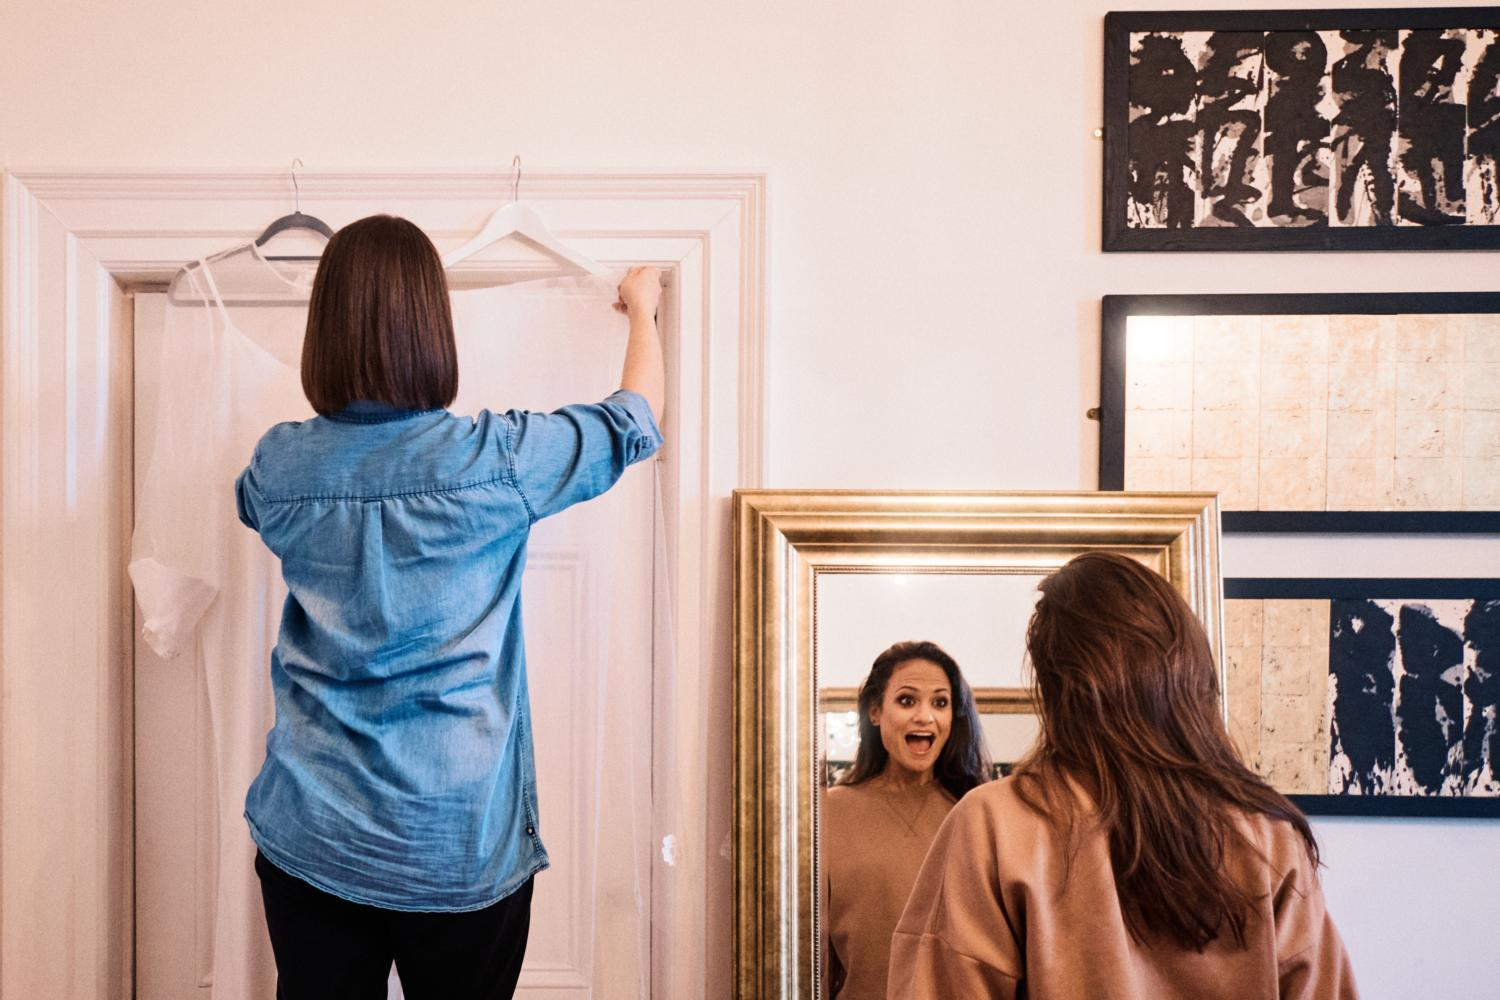 A bride in denim hangs up her veil while her friend smiles in the mirror